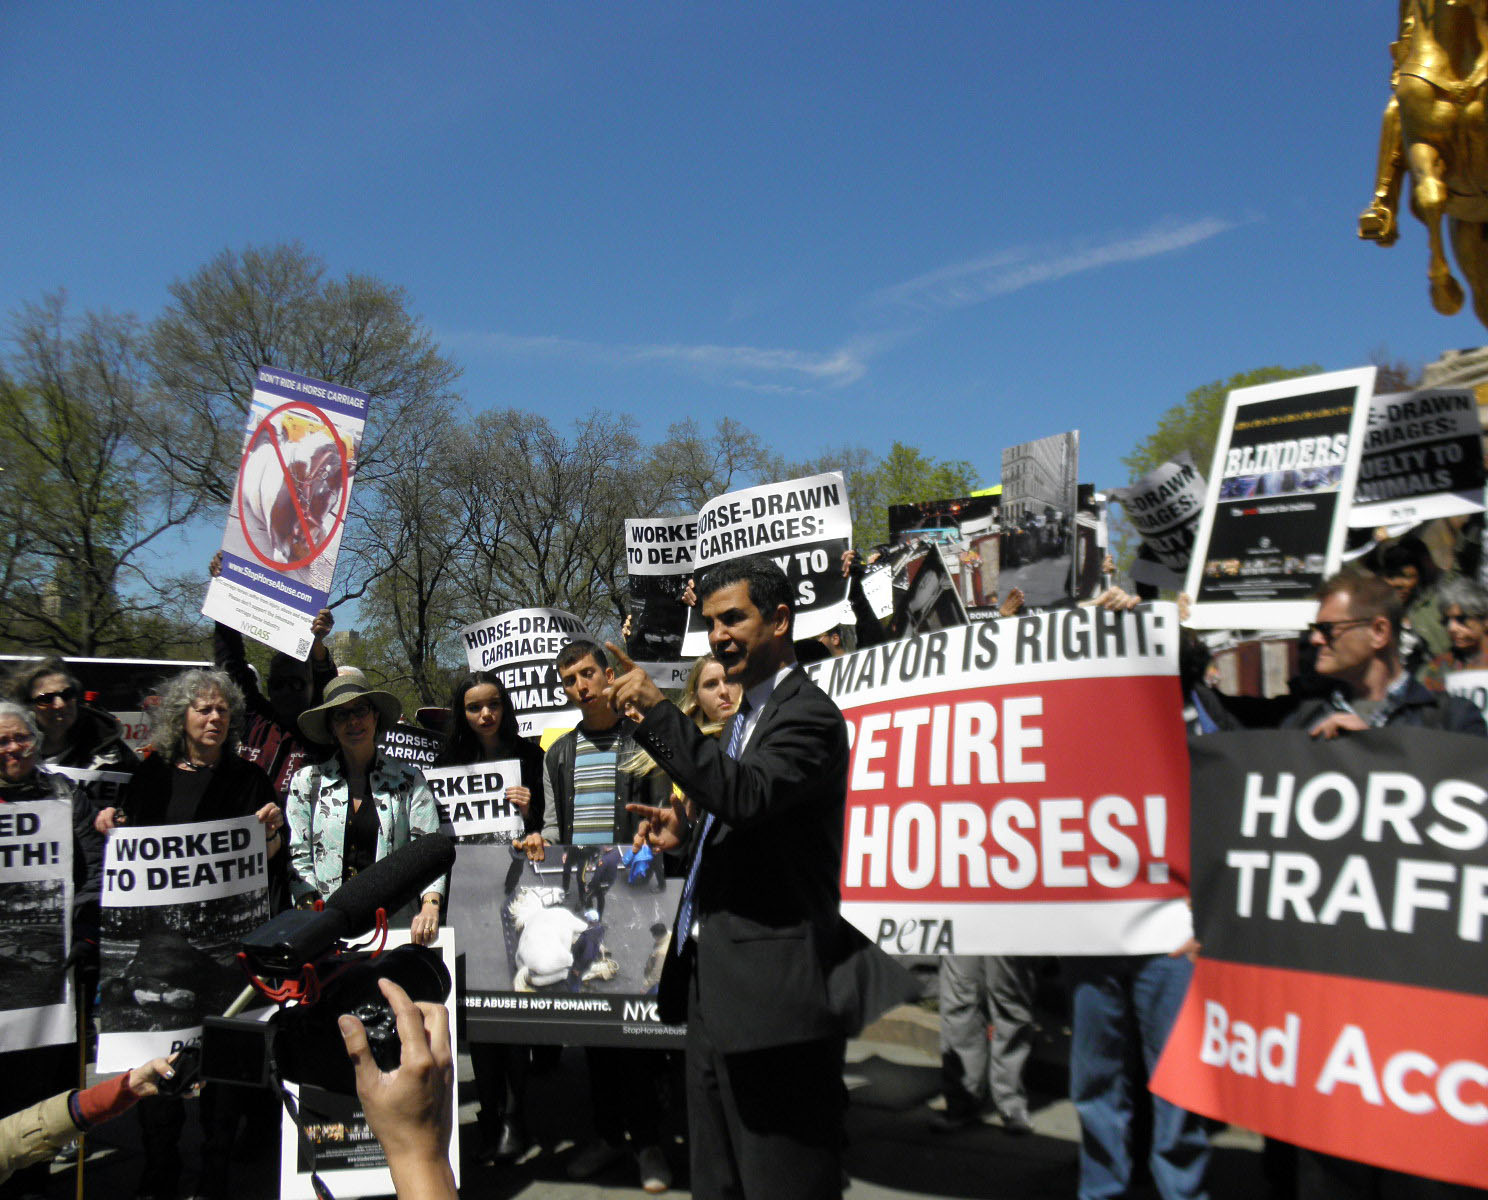 Another Horse Carriage Accident Sparks Protests